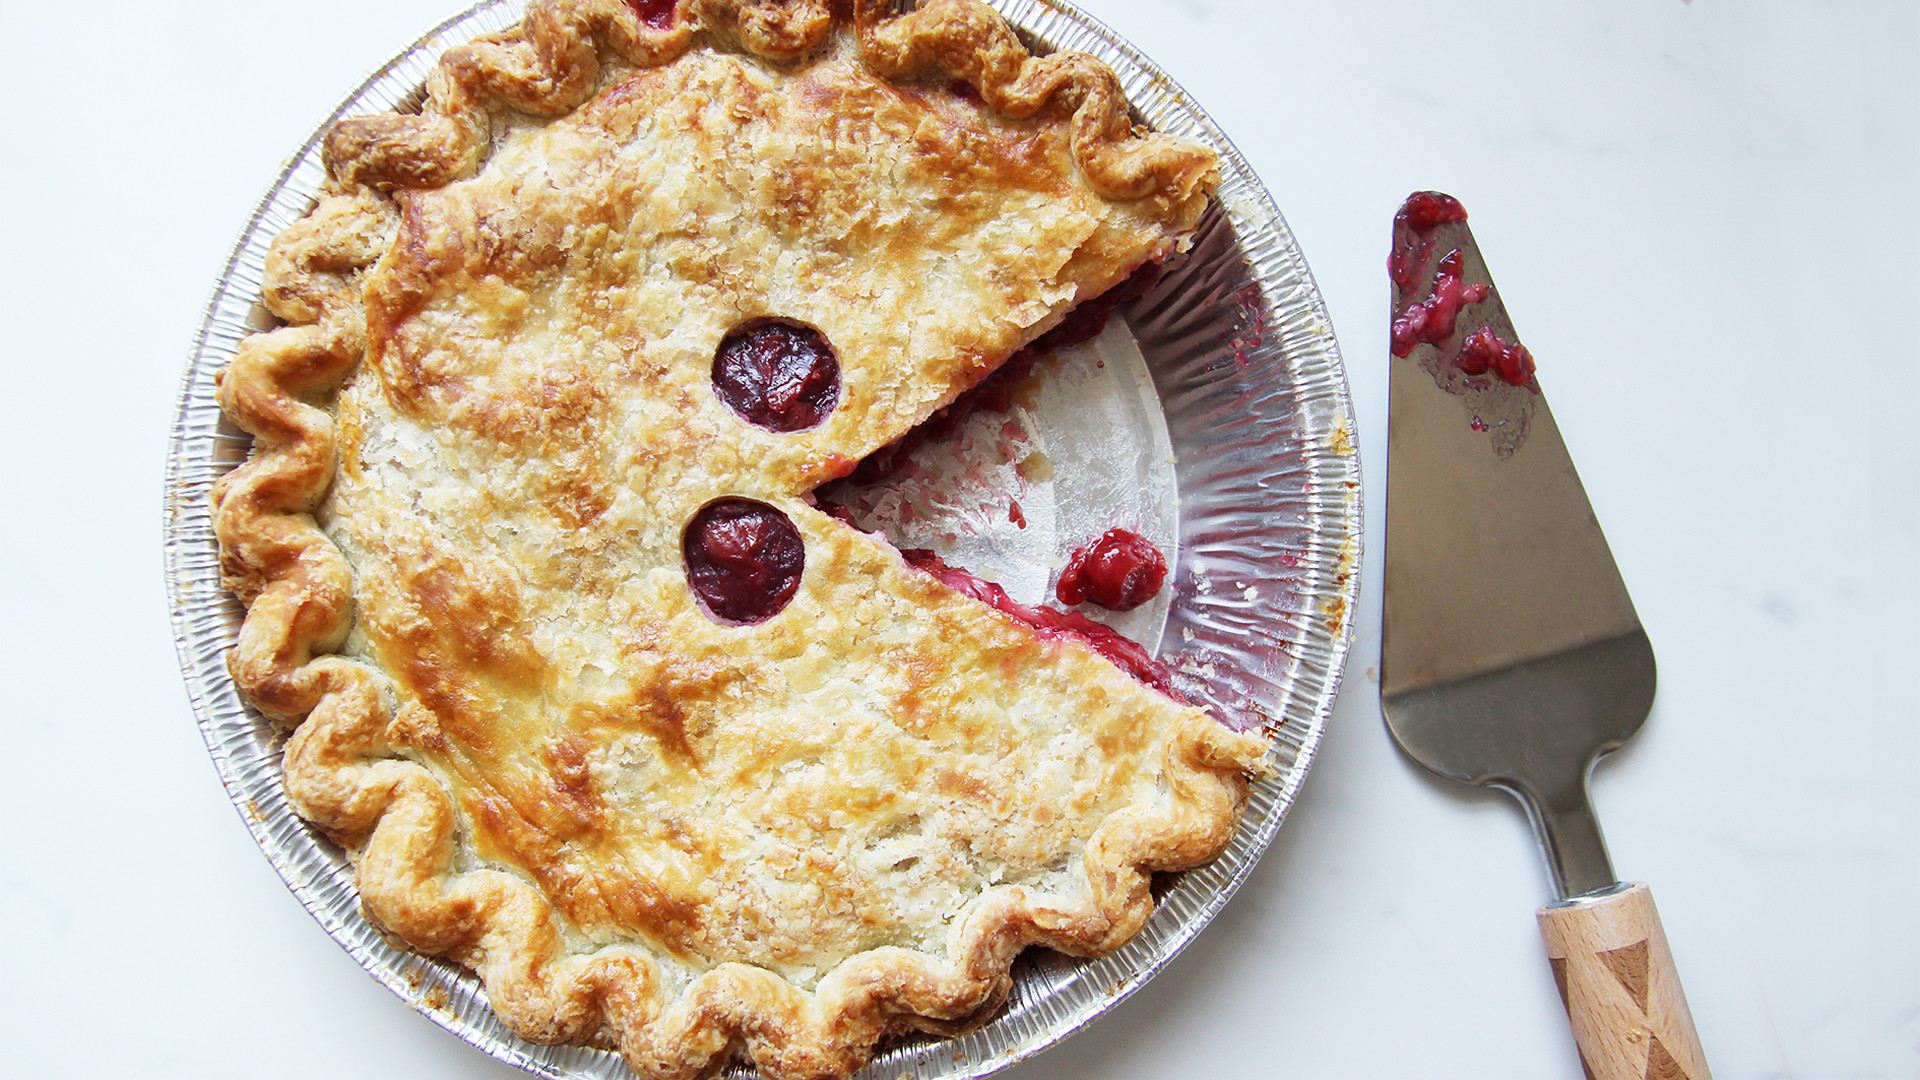 The best pie places in Toronto | sour cheery pie from Mabel's